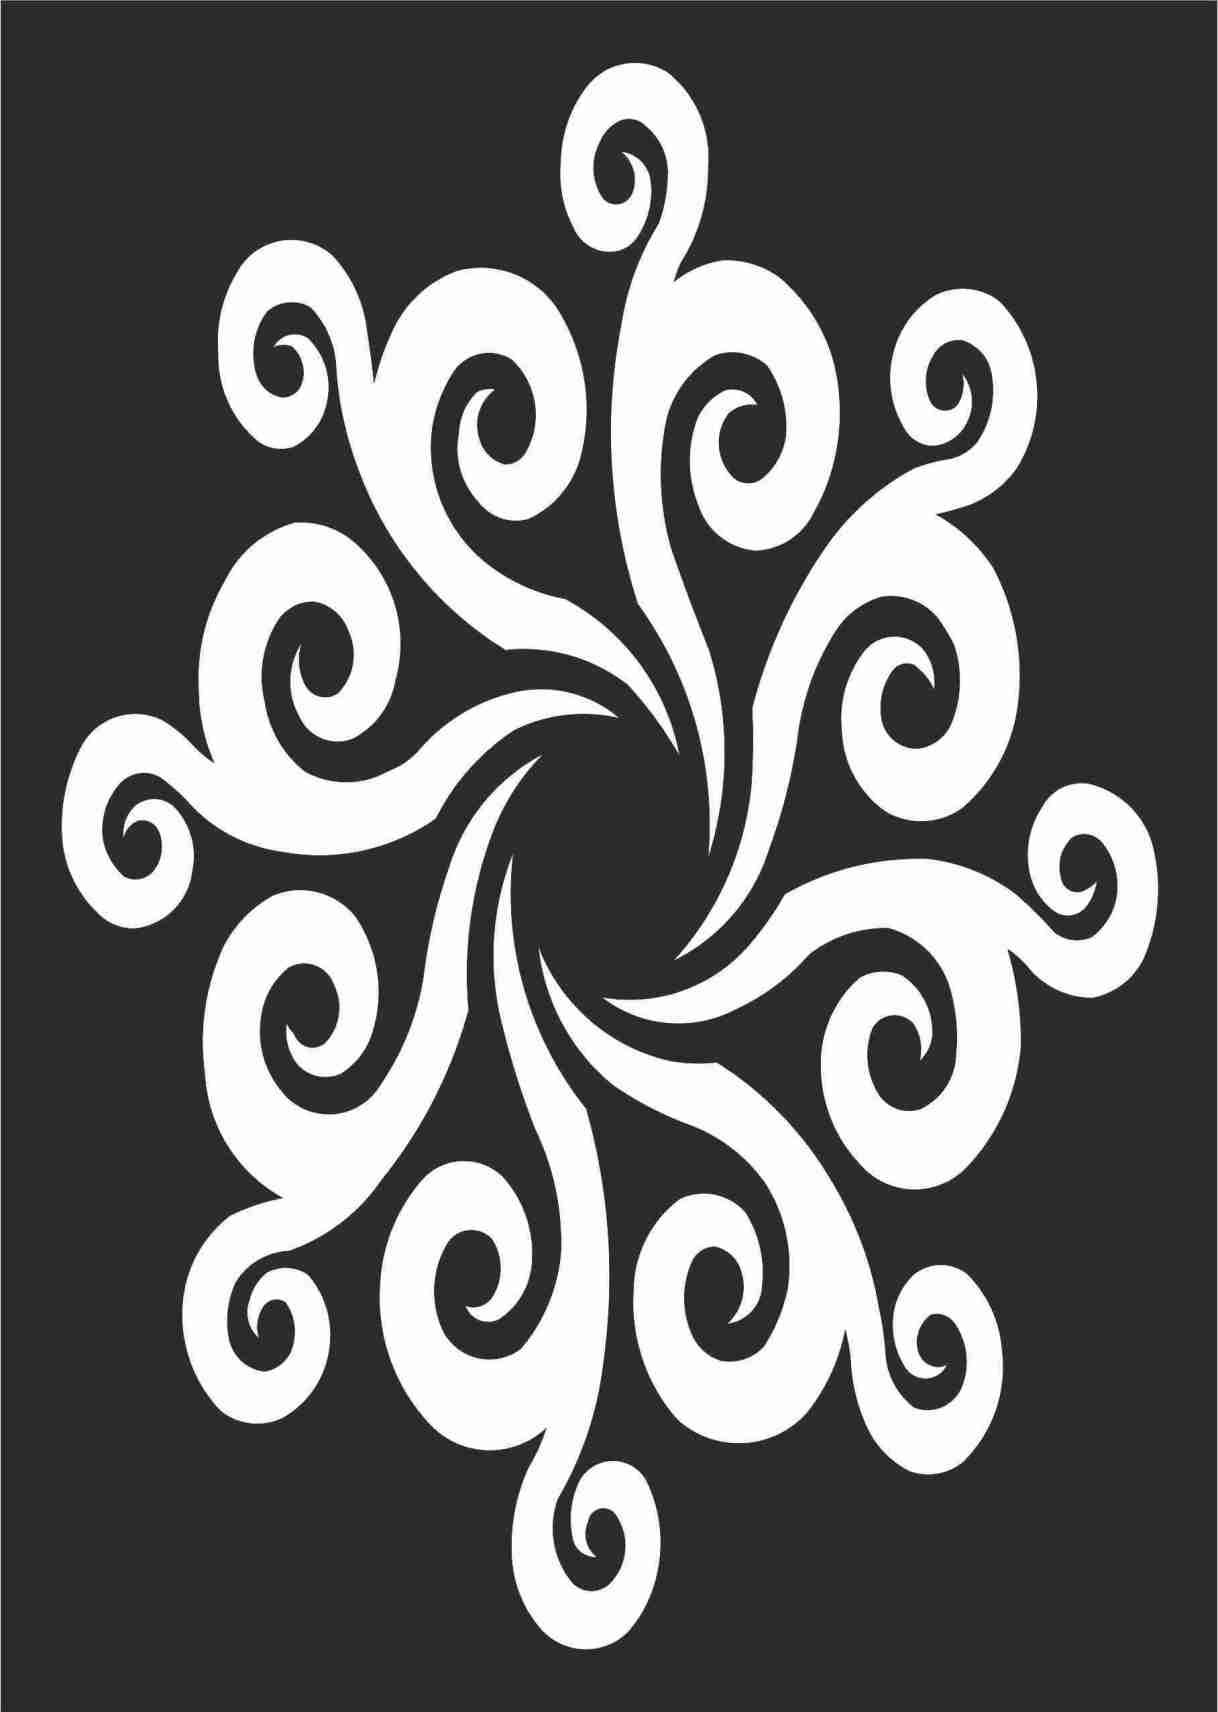 Decorative Screen Patterns For Laser Cutting 113 Free DXF File